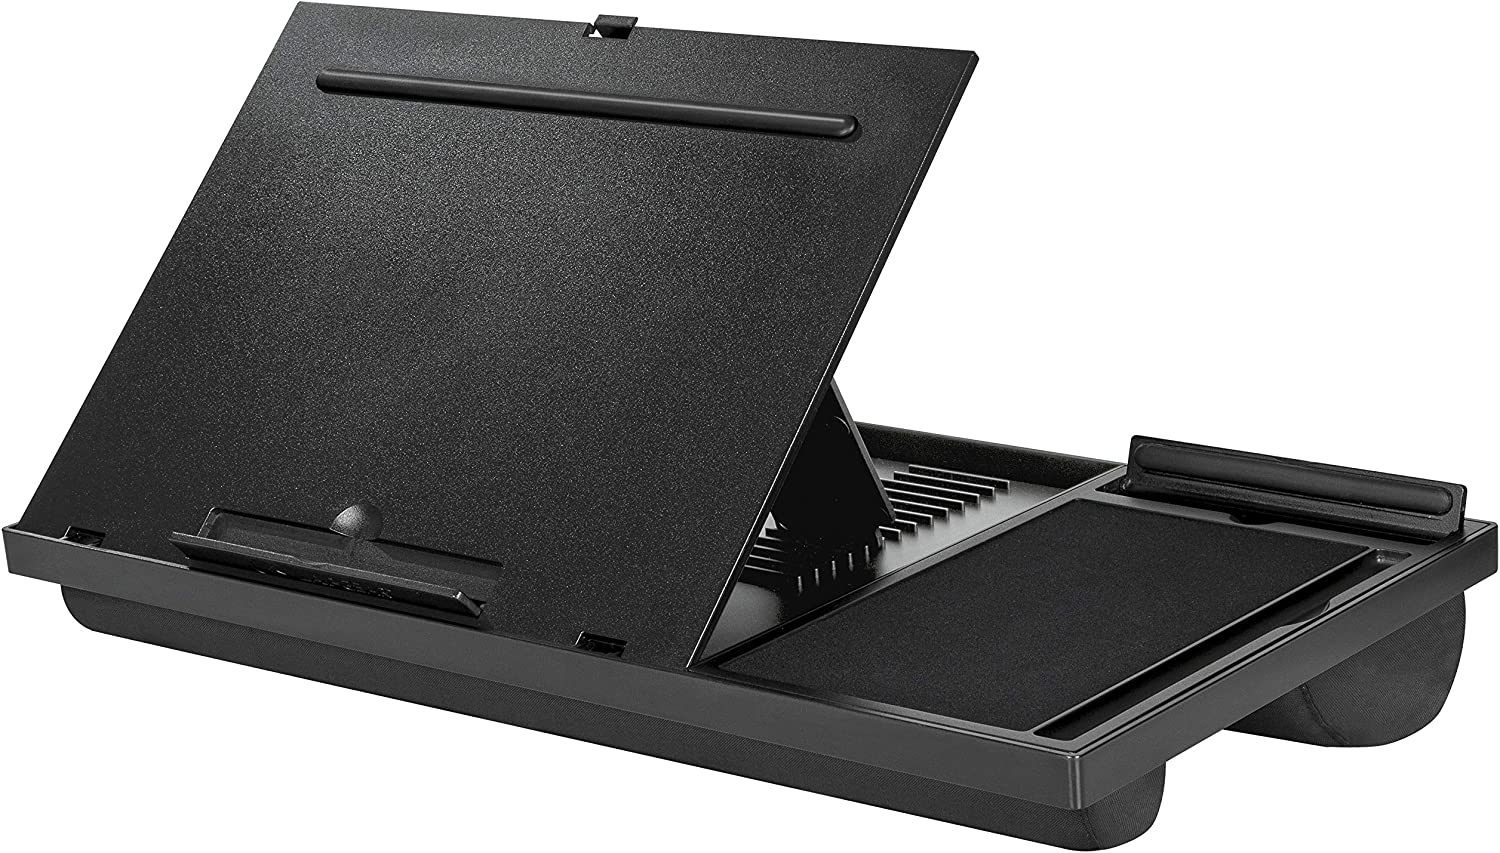 LapGear Ergo Pro Laptop Stand - Lap Desk with 20 Adjustable Angles, Mouse Pad, and Phone Holder - Black - Fits Up to 15.6 Inch Laptops and Most Tablets - Style No. 49408 : Office Products